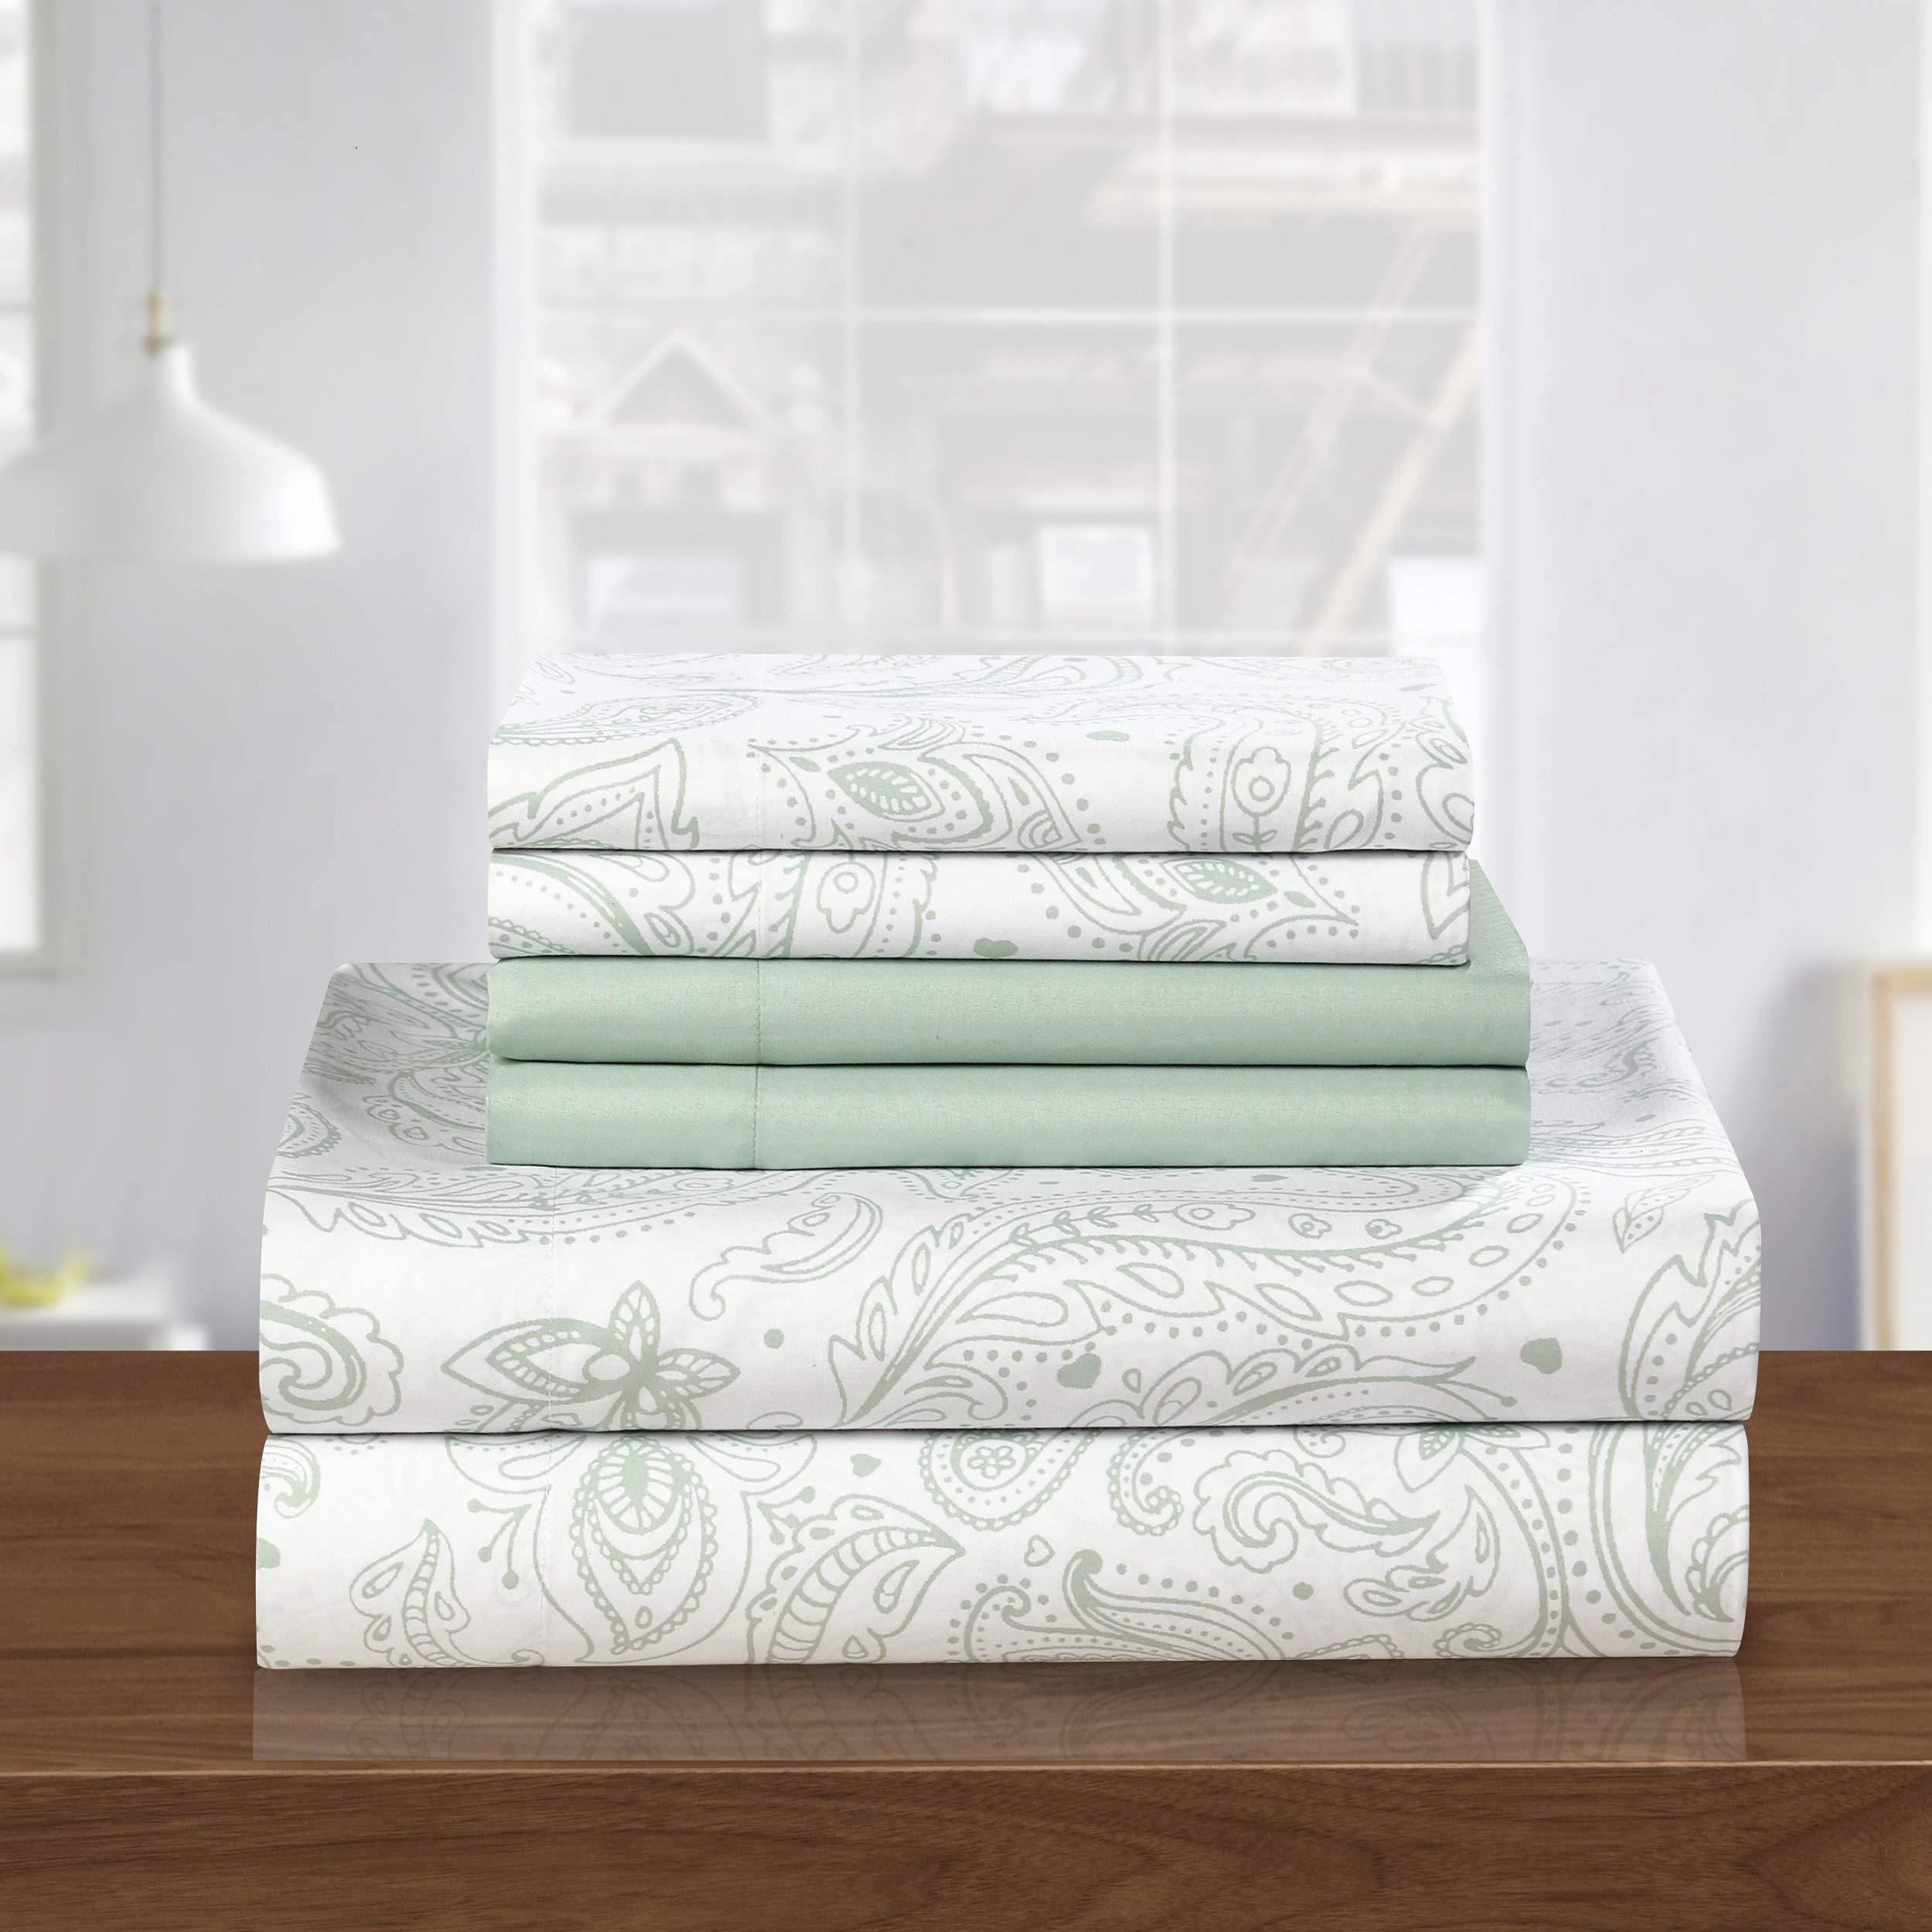 PH 6 Piece King Green Printed Sheet Set, Country & Vintage Style, Microfiber Material, Paisley Pattern Deep Pockets, Fully Elasticized Fitted, Machine Wash - Floral Print